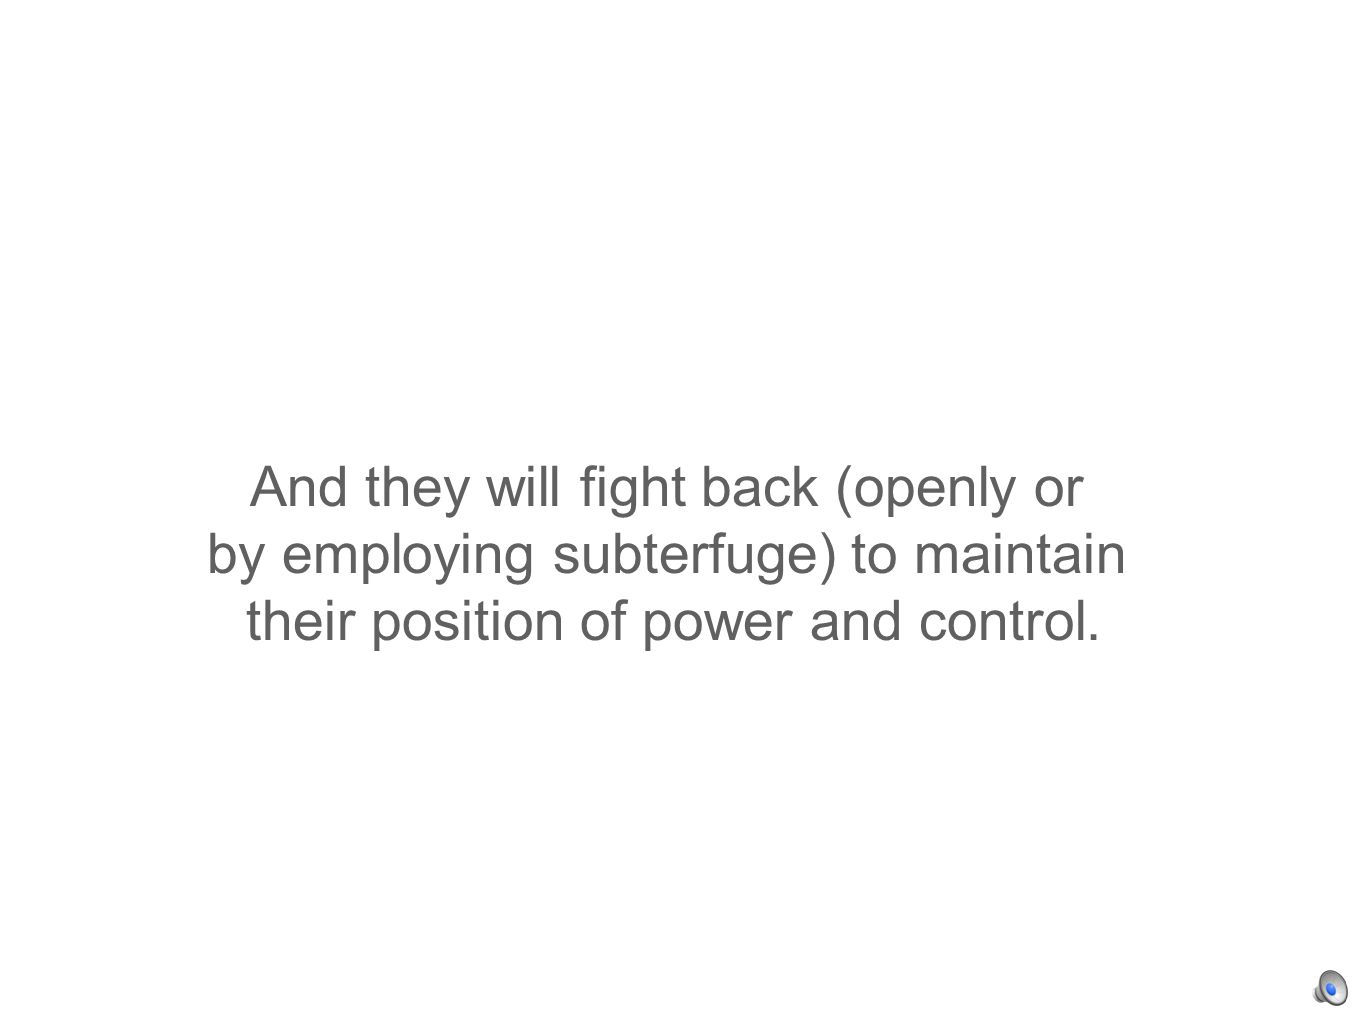 And they will fight back (openly or by employing subterfuge) to maintain their position of power and control.